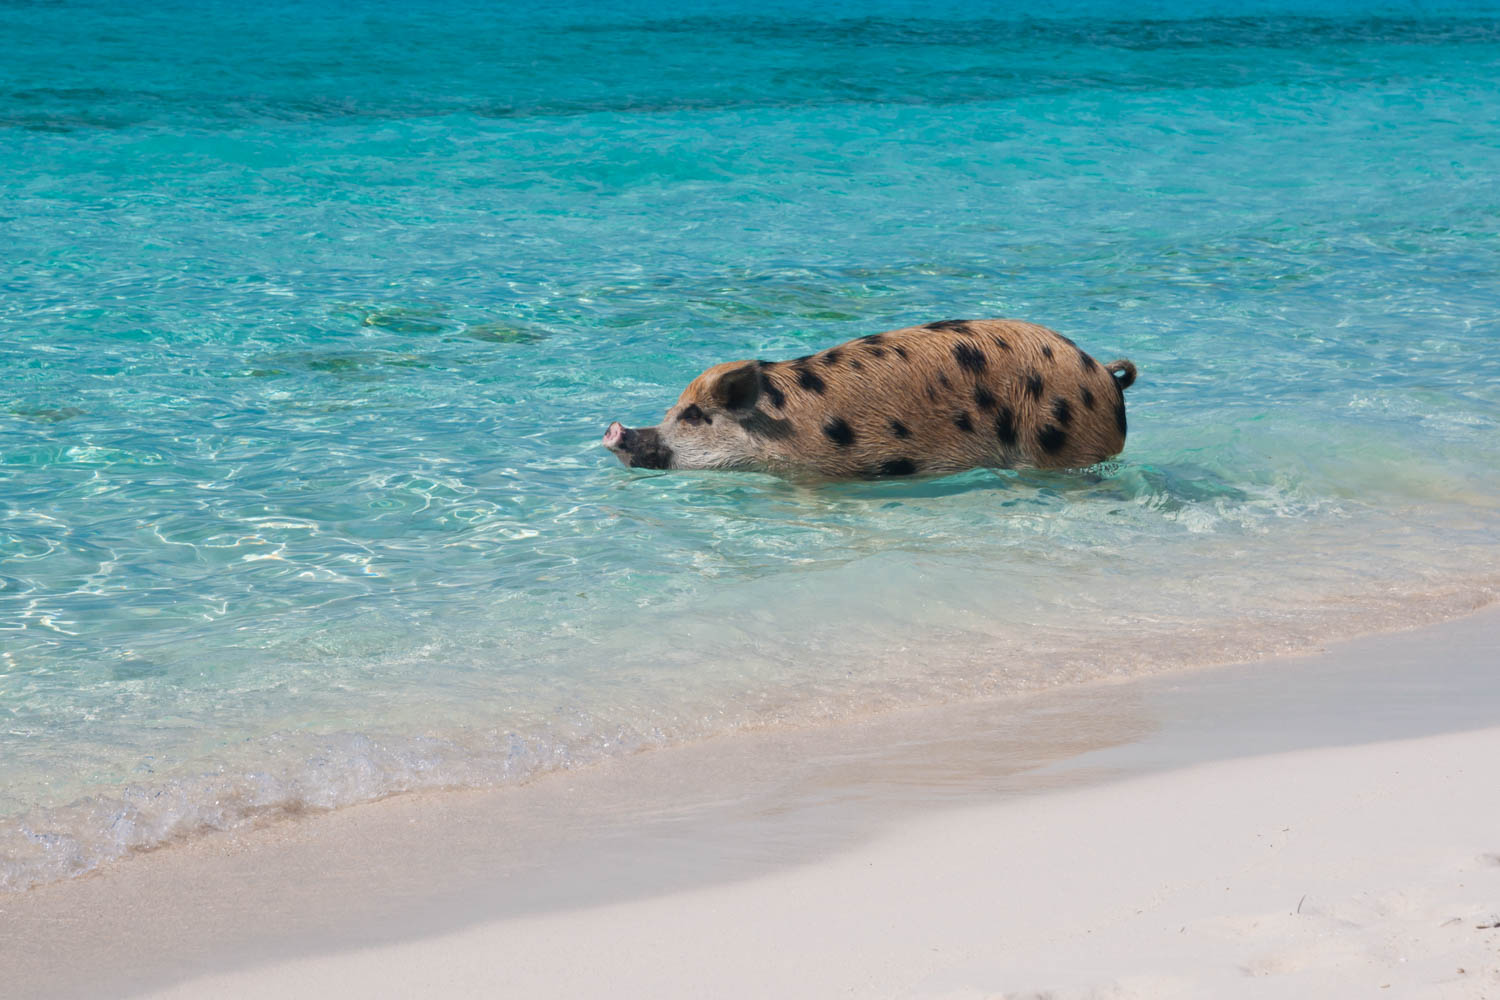 Big Major Cay in the Exuma Cays is home to the swimming pigs. Captured on a Pig Island tour to Pig Beach.